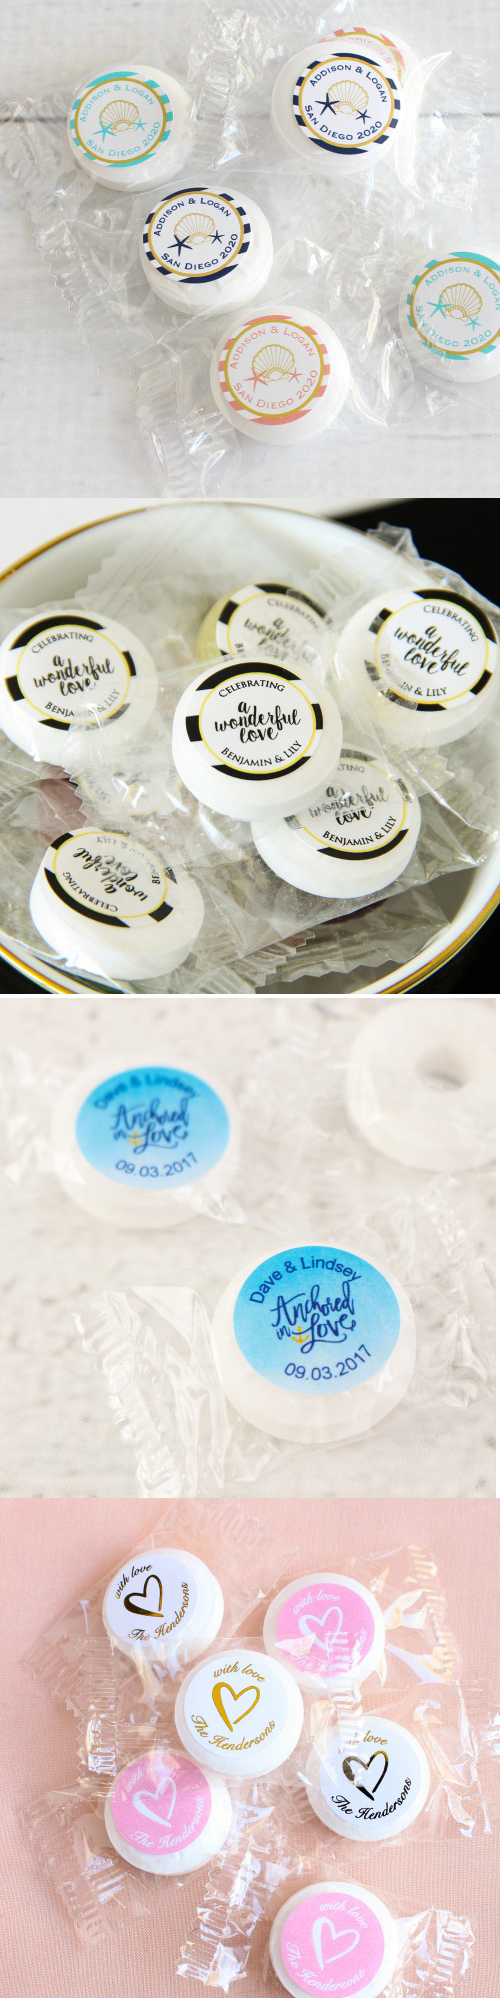 60+ Gorgeous Beach Wedding Decoration / Favor Ideas for a Perfect ...